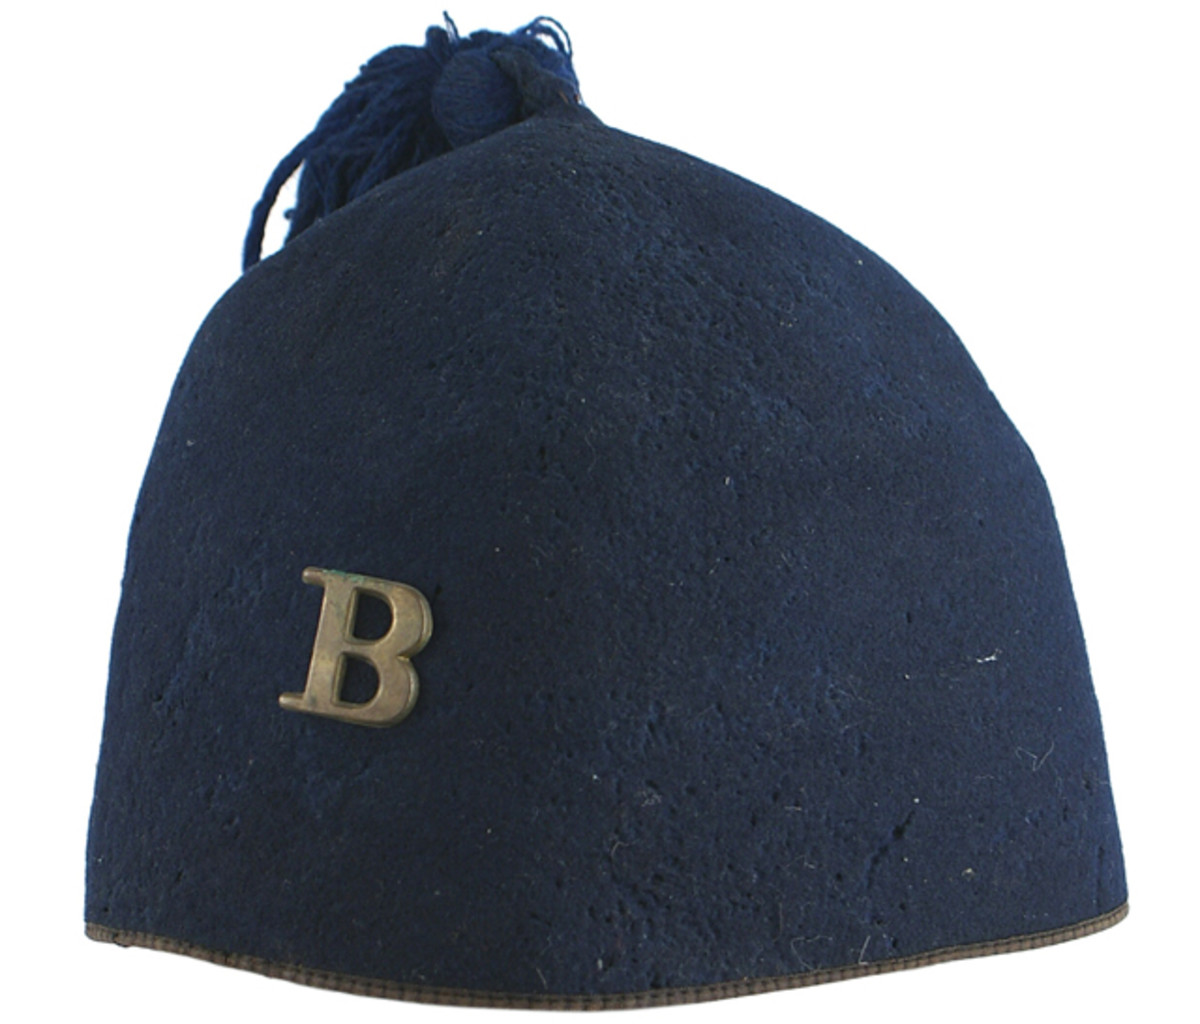 Very rare Civil War blue felt fez hat worn by a member of the 11th New York Fire Zouaves (MB: $5,000).